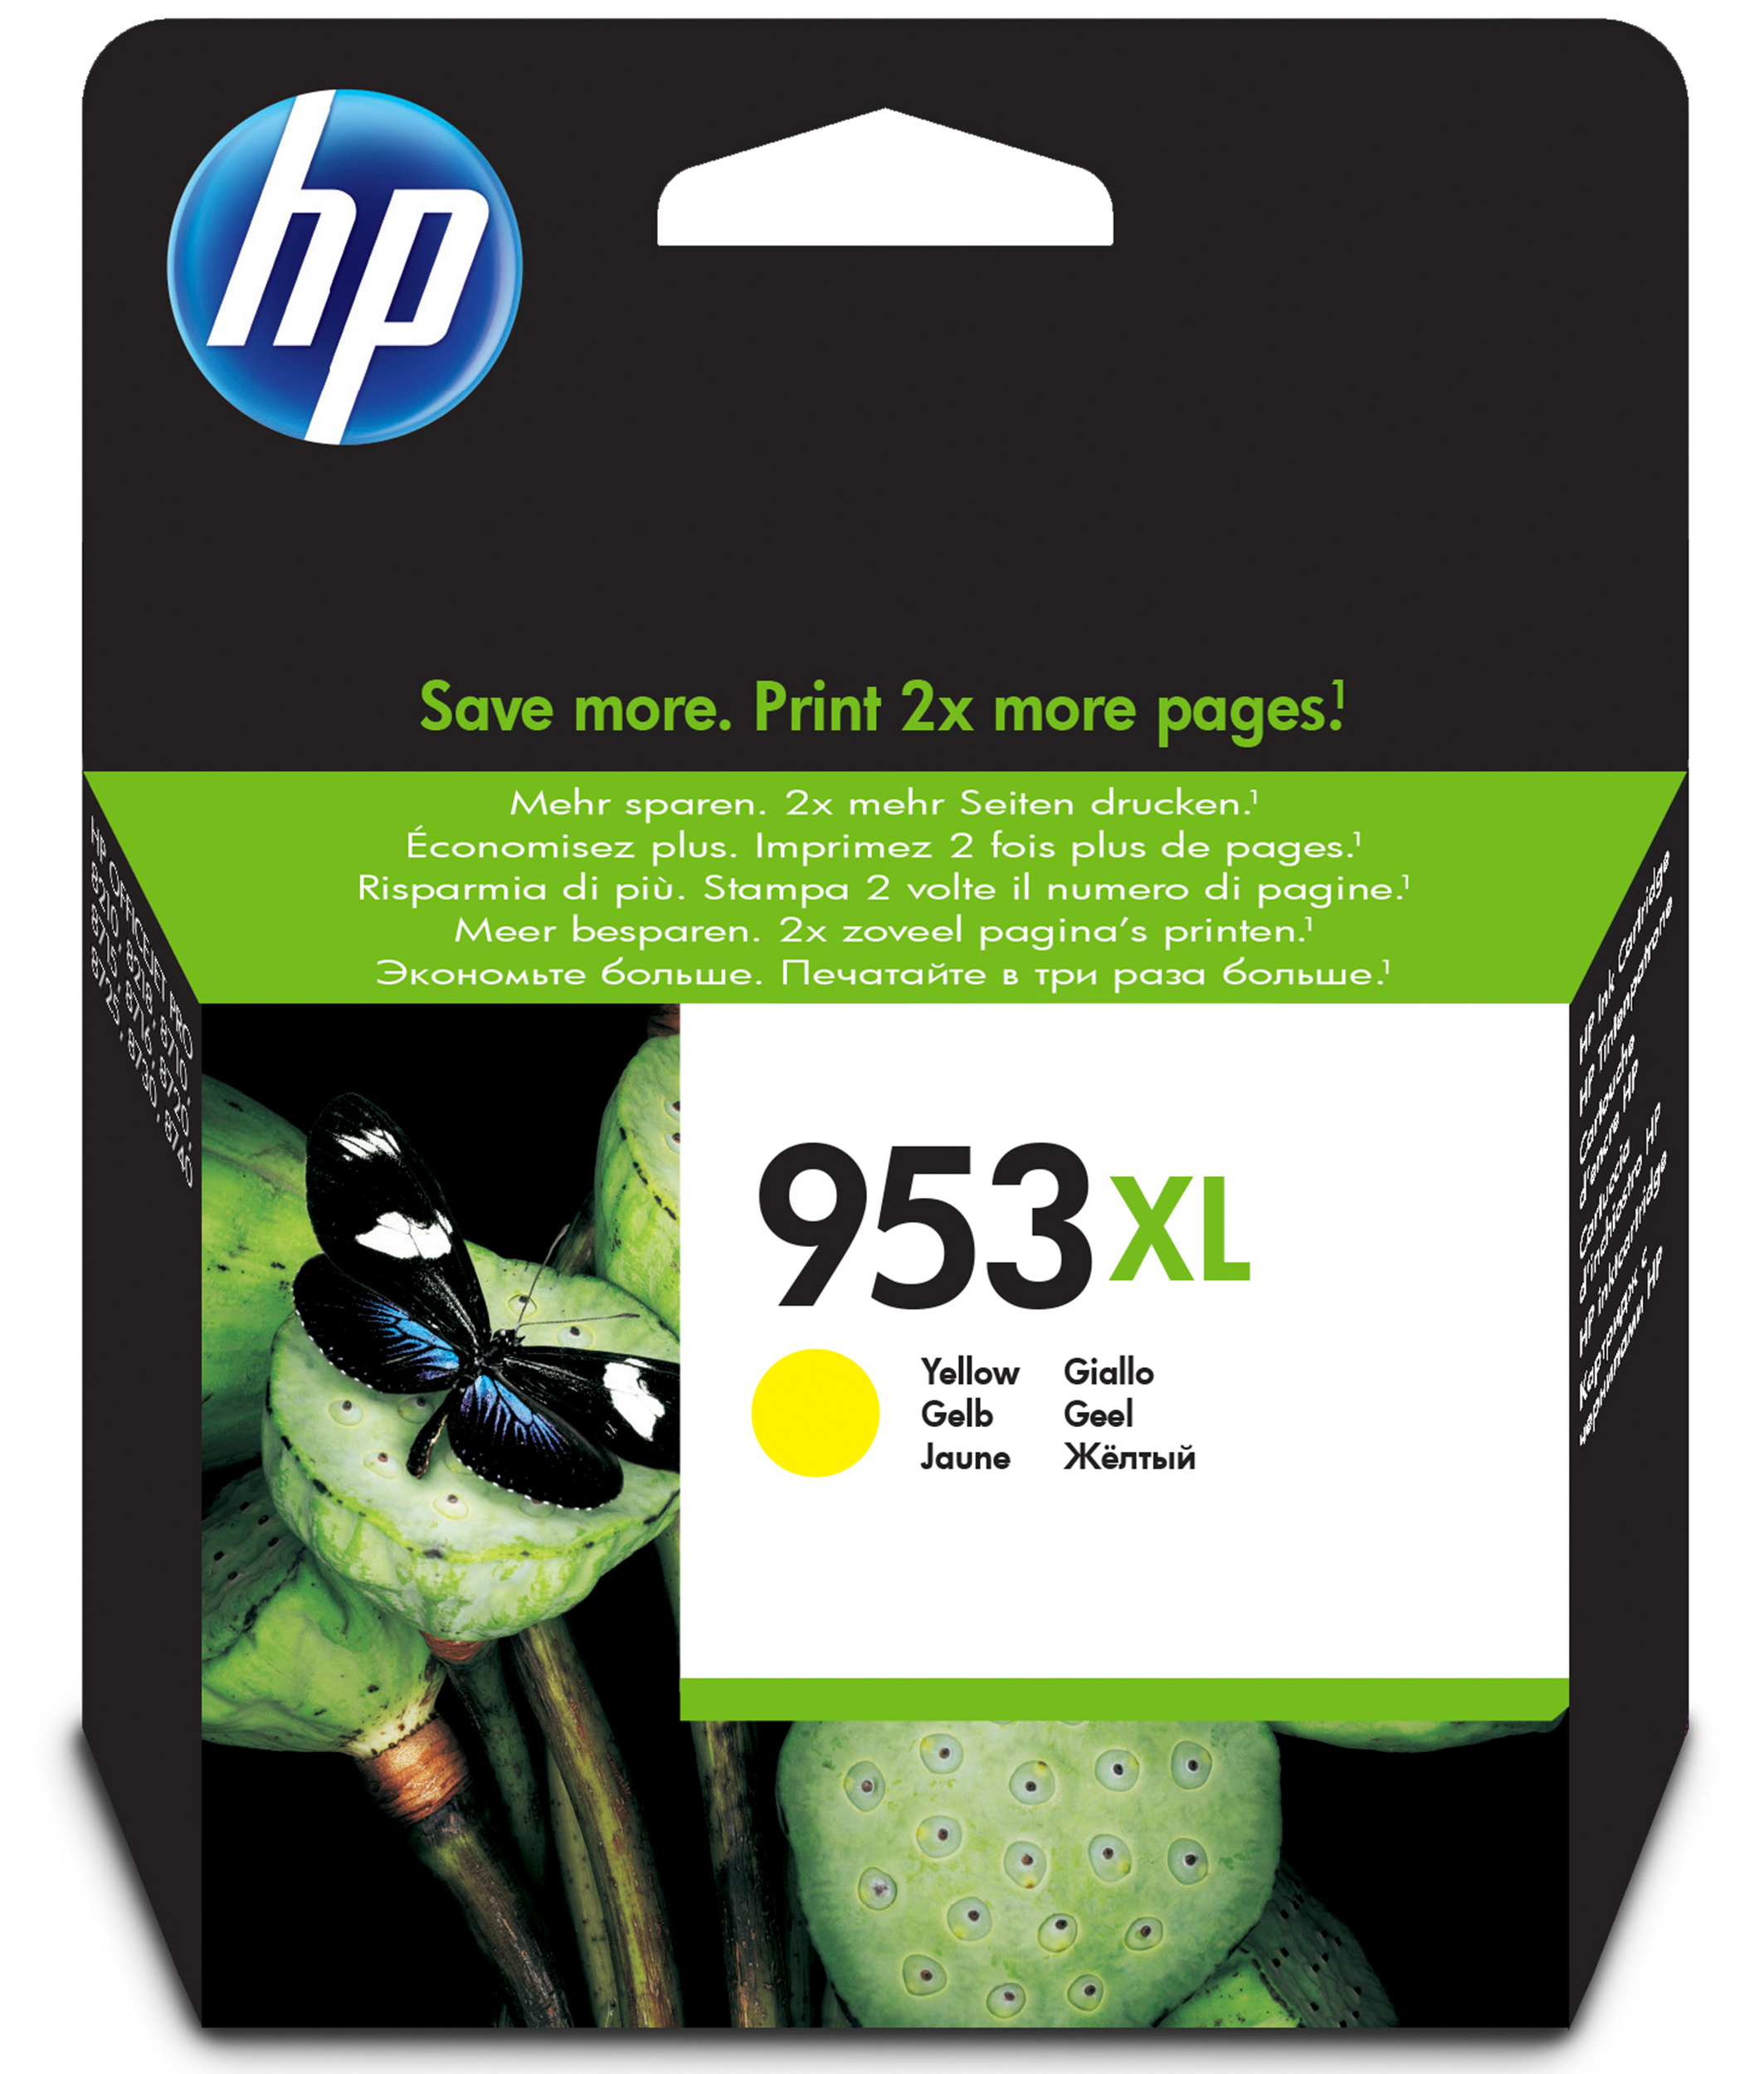 Hp - Inkjet Supply (pl1n) Mvs    Ink Cartridge No 953xl Yellow       De/fr/nl/be/uk/se/it                F6u18ae#bgx